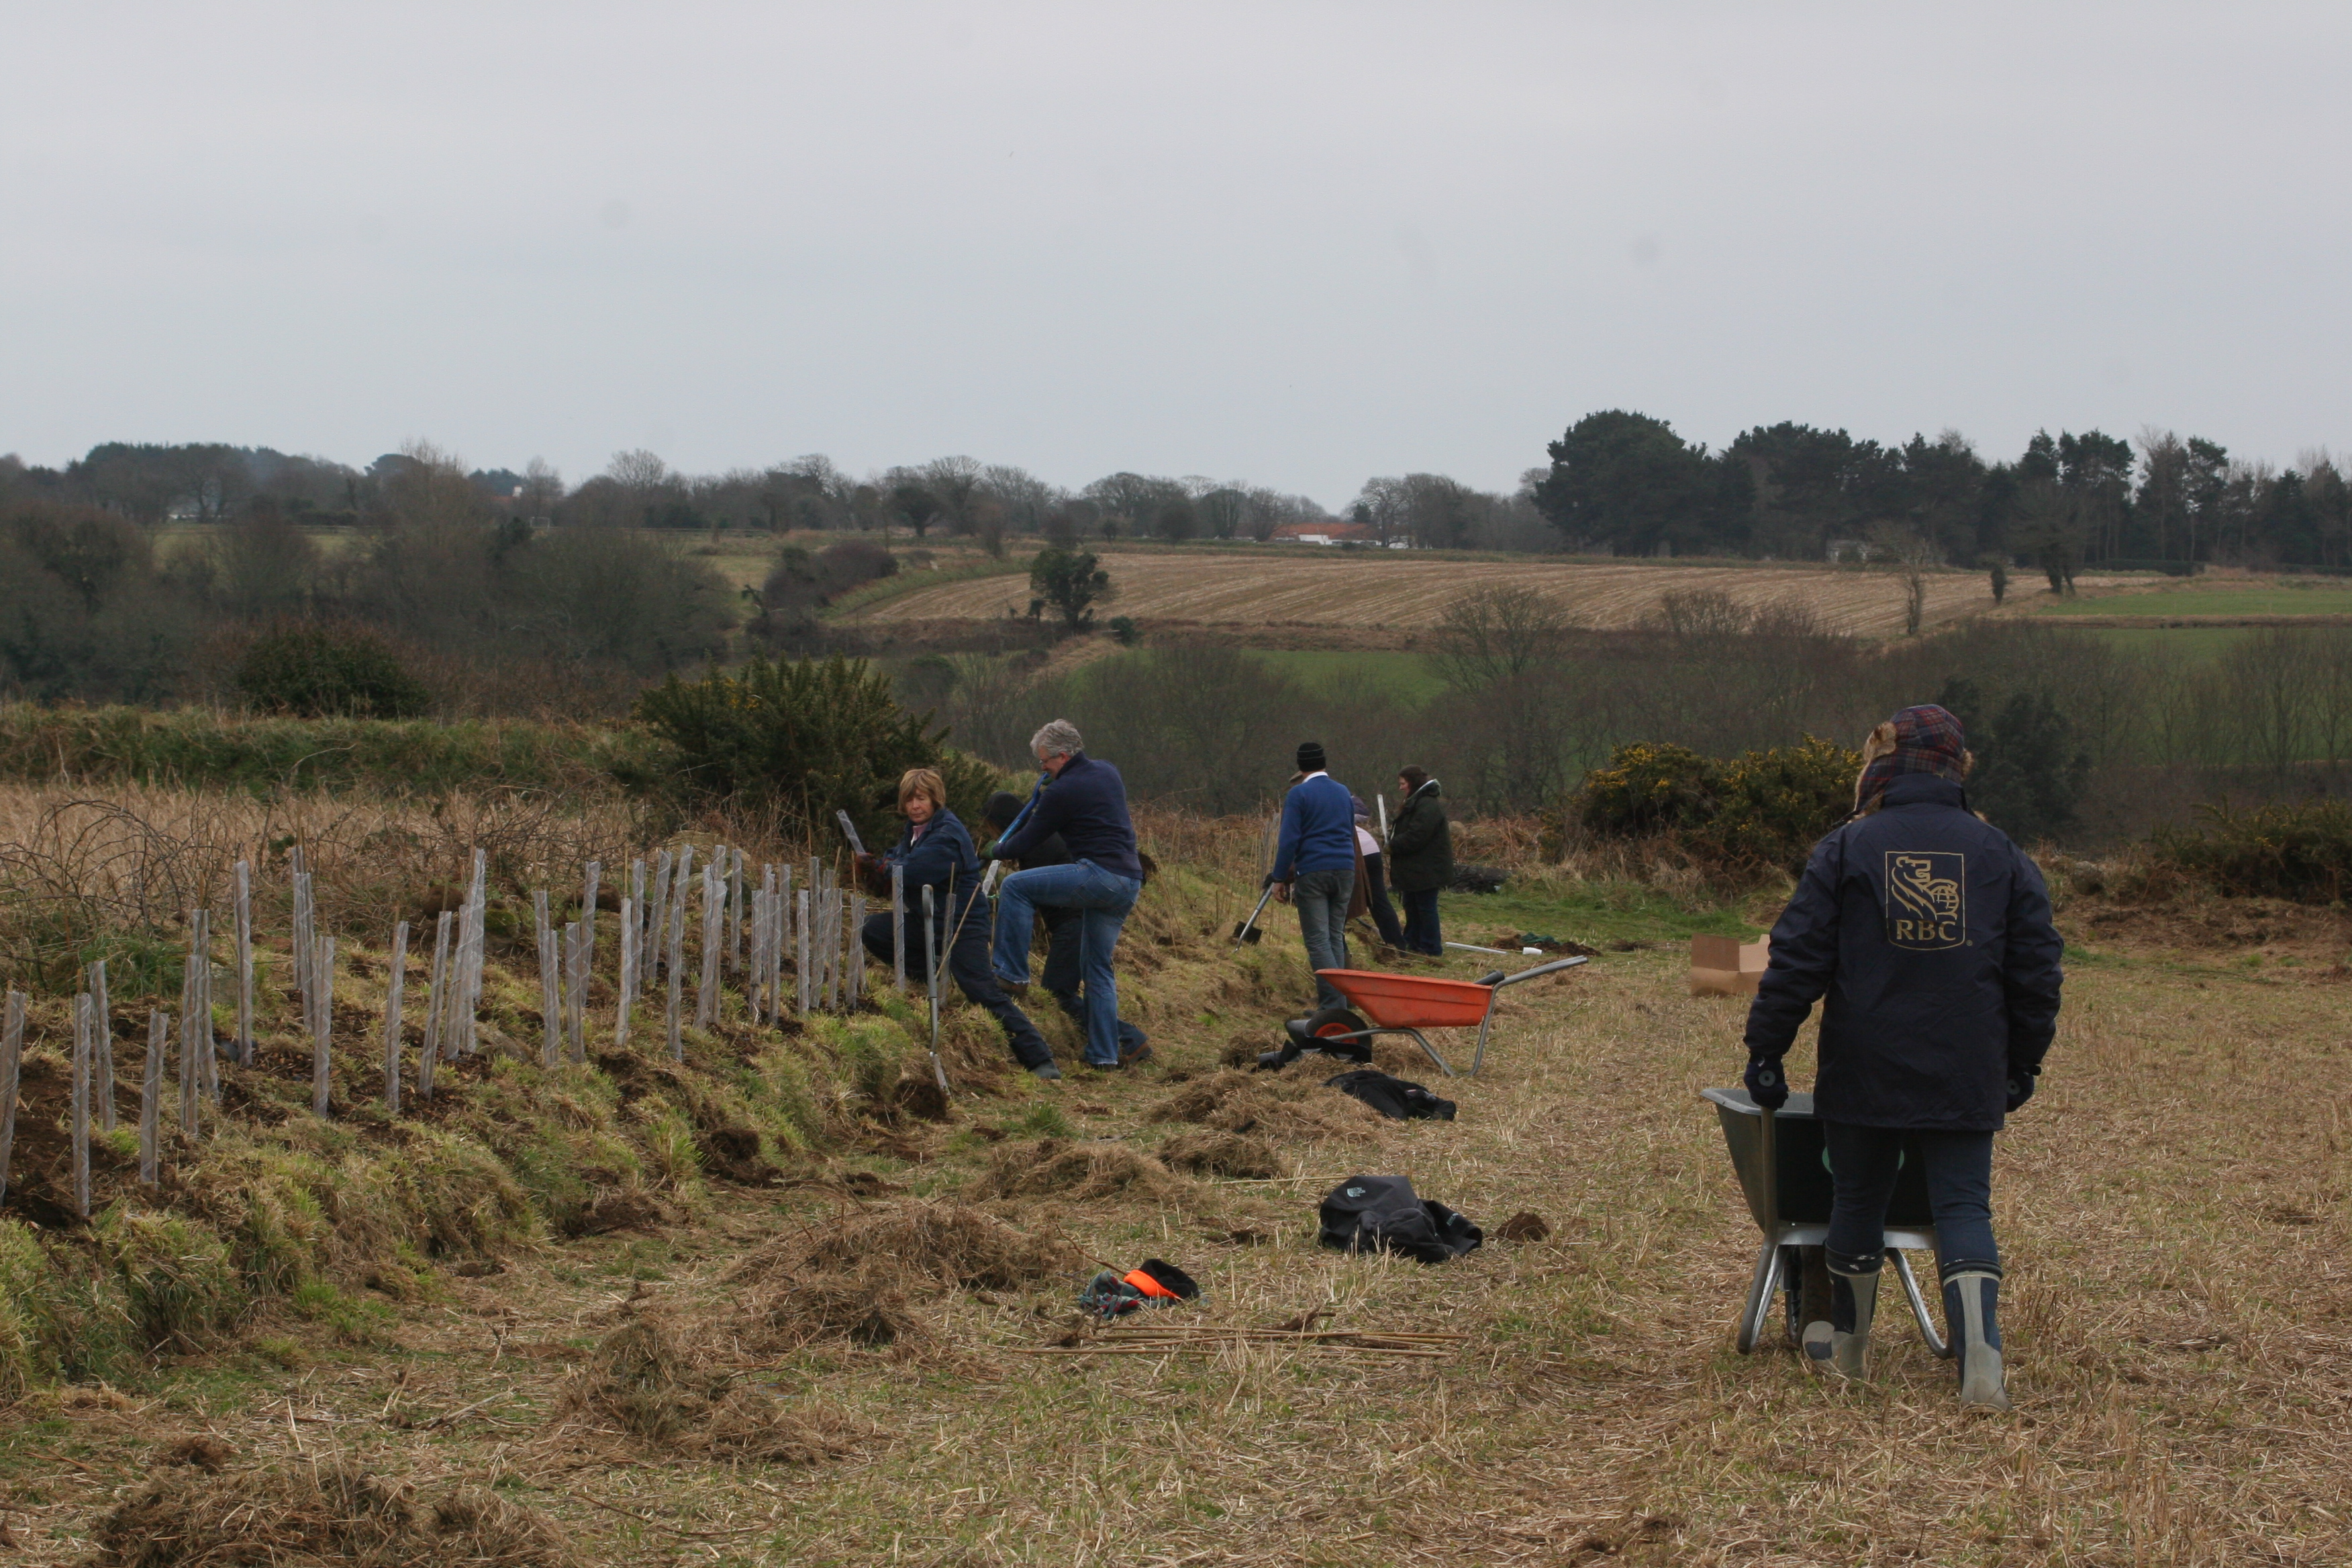 Planting hedges at Le Don Hodges 2013. Photo by Cris Sellares